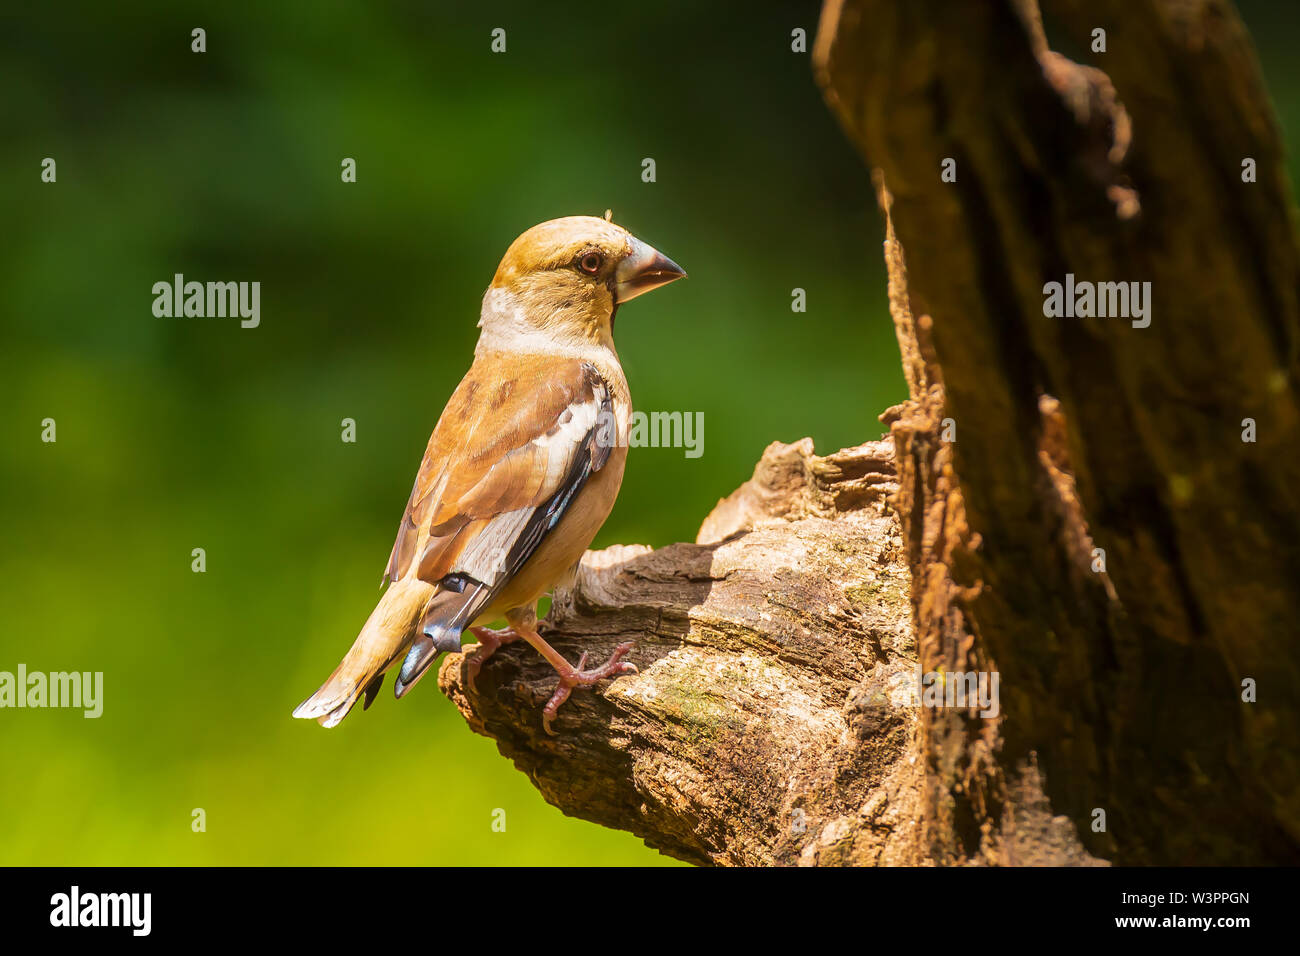 Closeup of a hawfinch female, Coccothraustes coccothraustes, bird perched on wood. Selective focus, natural daylight - Stock Image